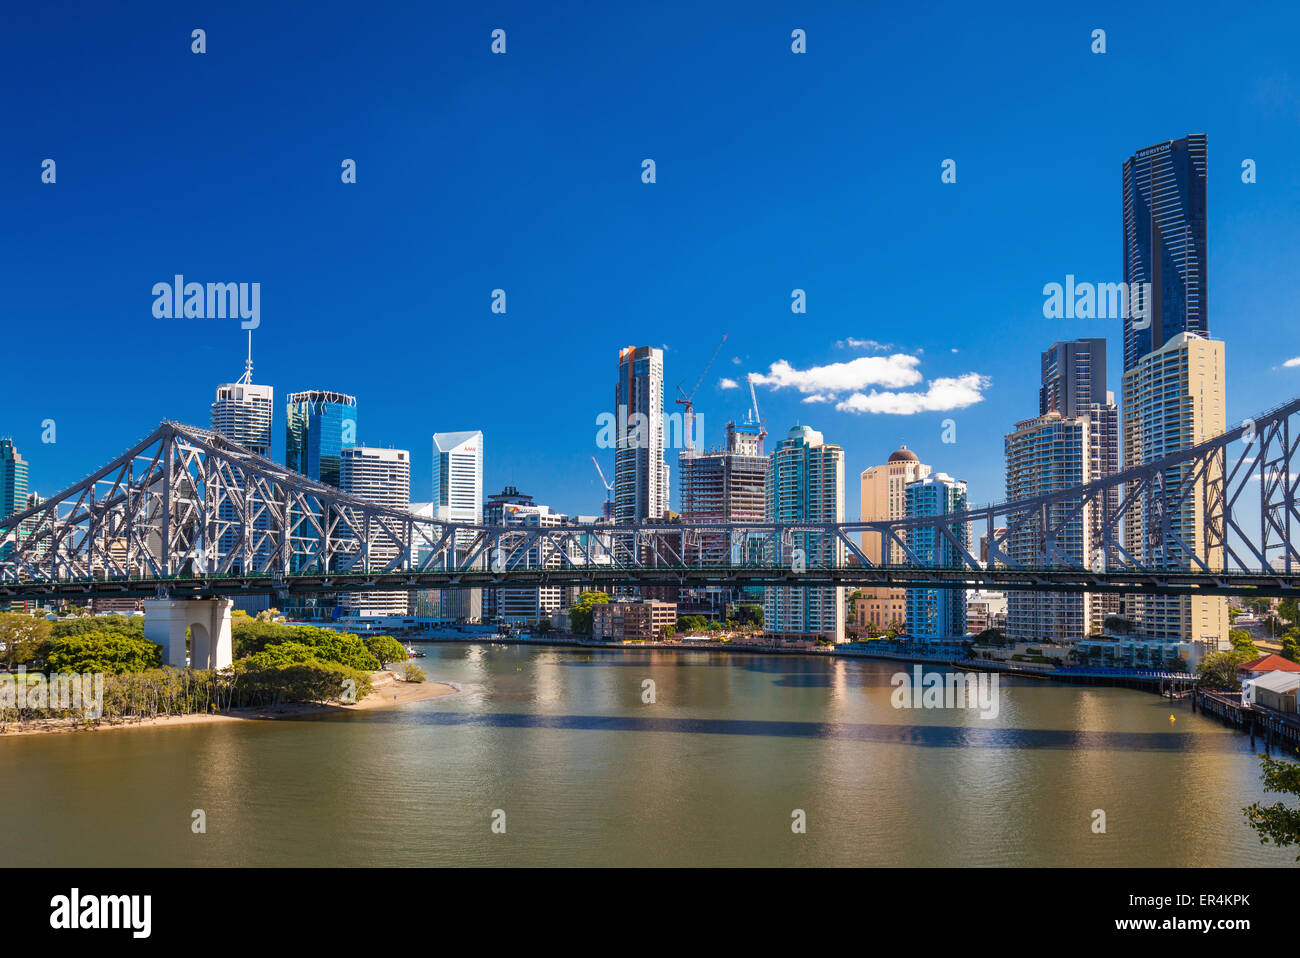 Ferry boat under Story Bridge with skyline of Brisbane, Queensland, Australia - Stock Image